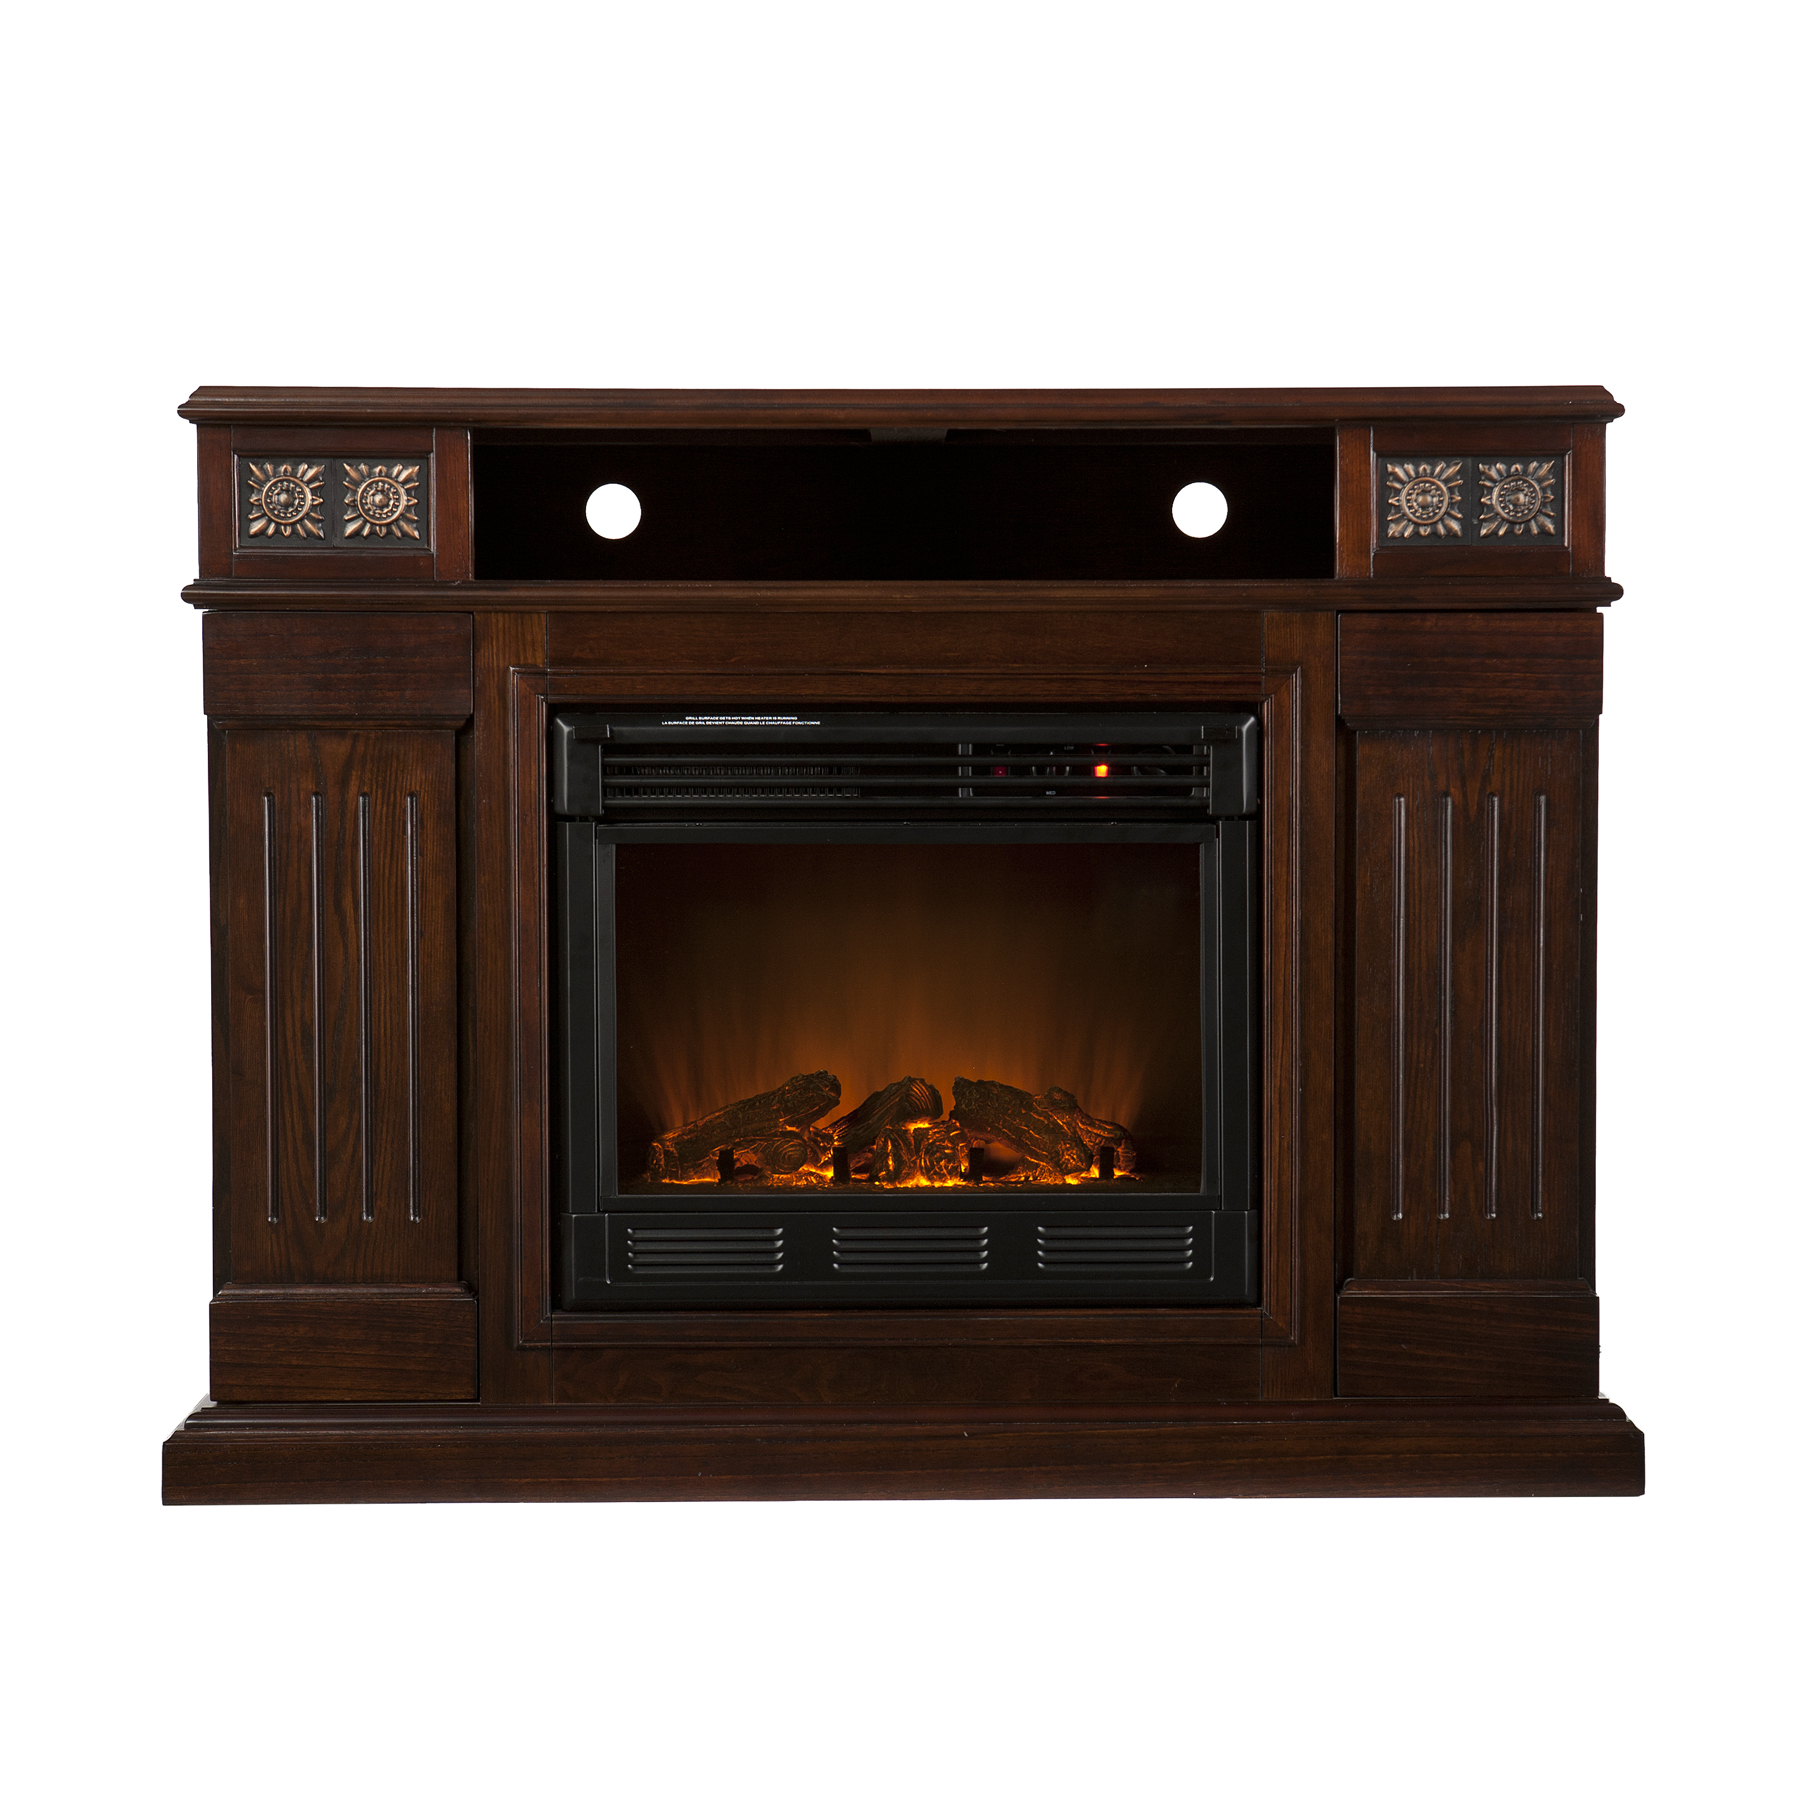 fireplacehut.com